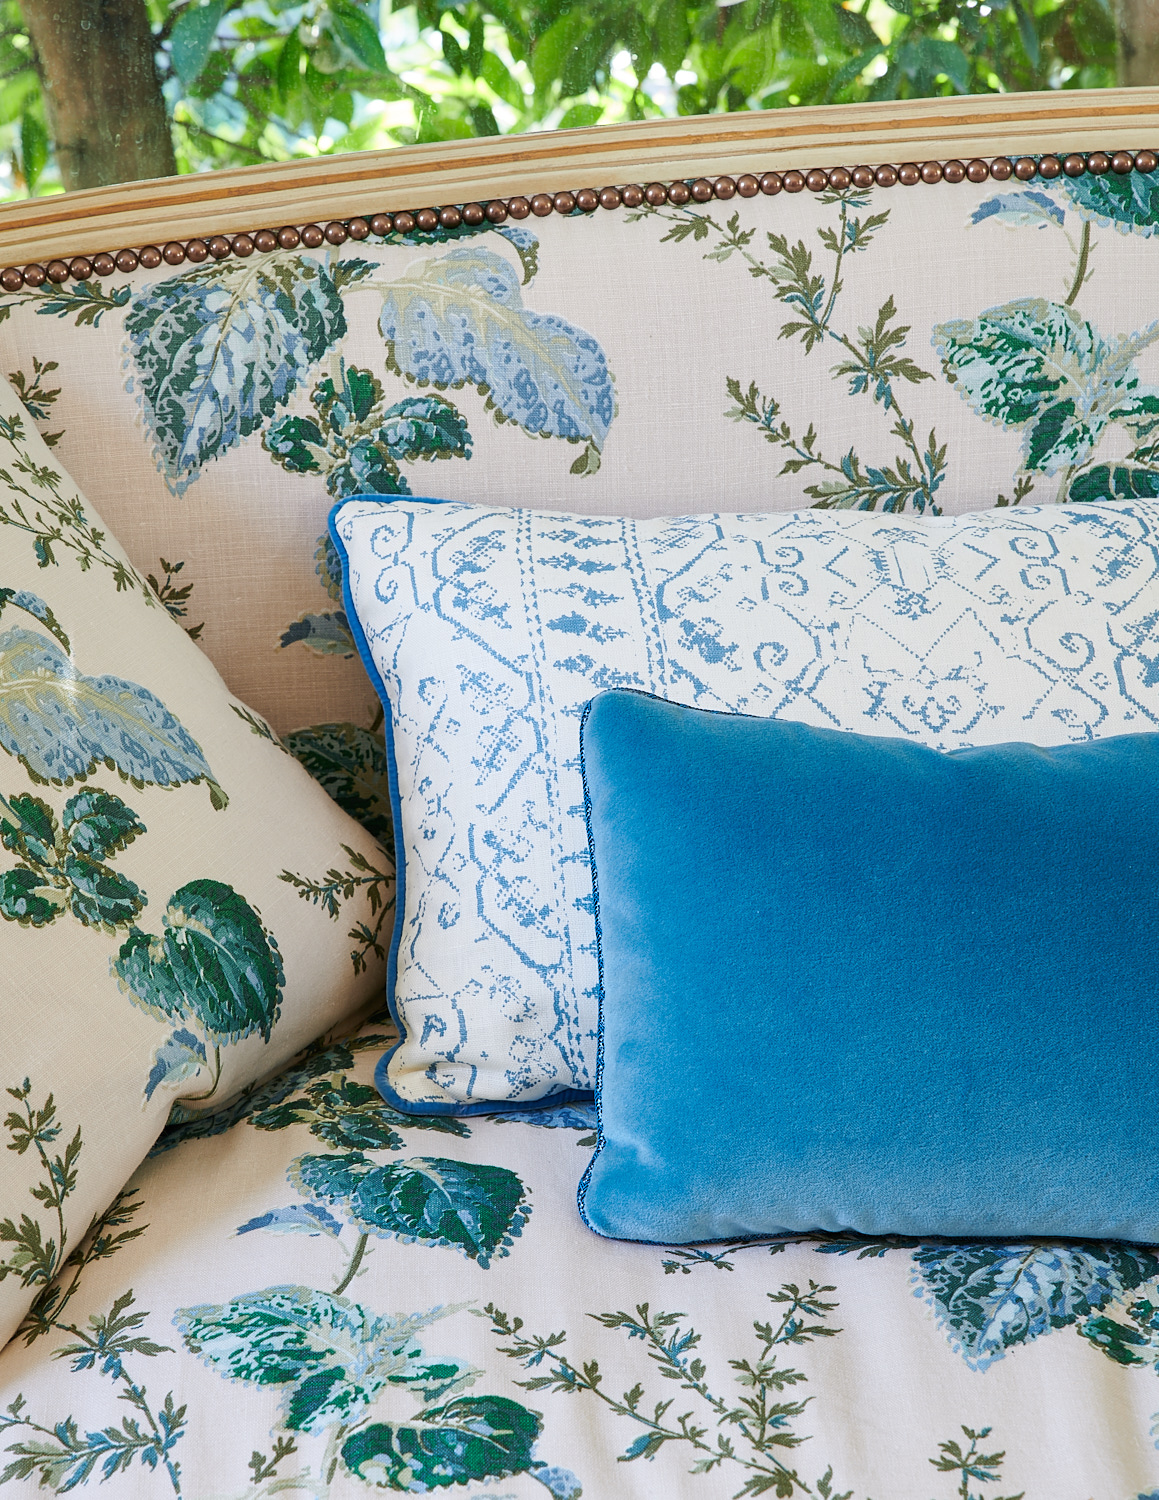 Leafy fabric upholstery on bench with metal studs and velvet throw pillow